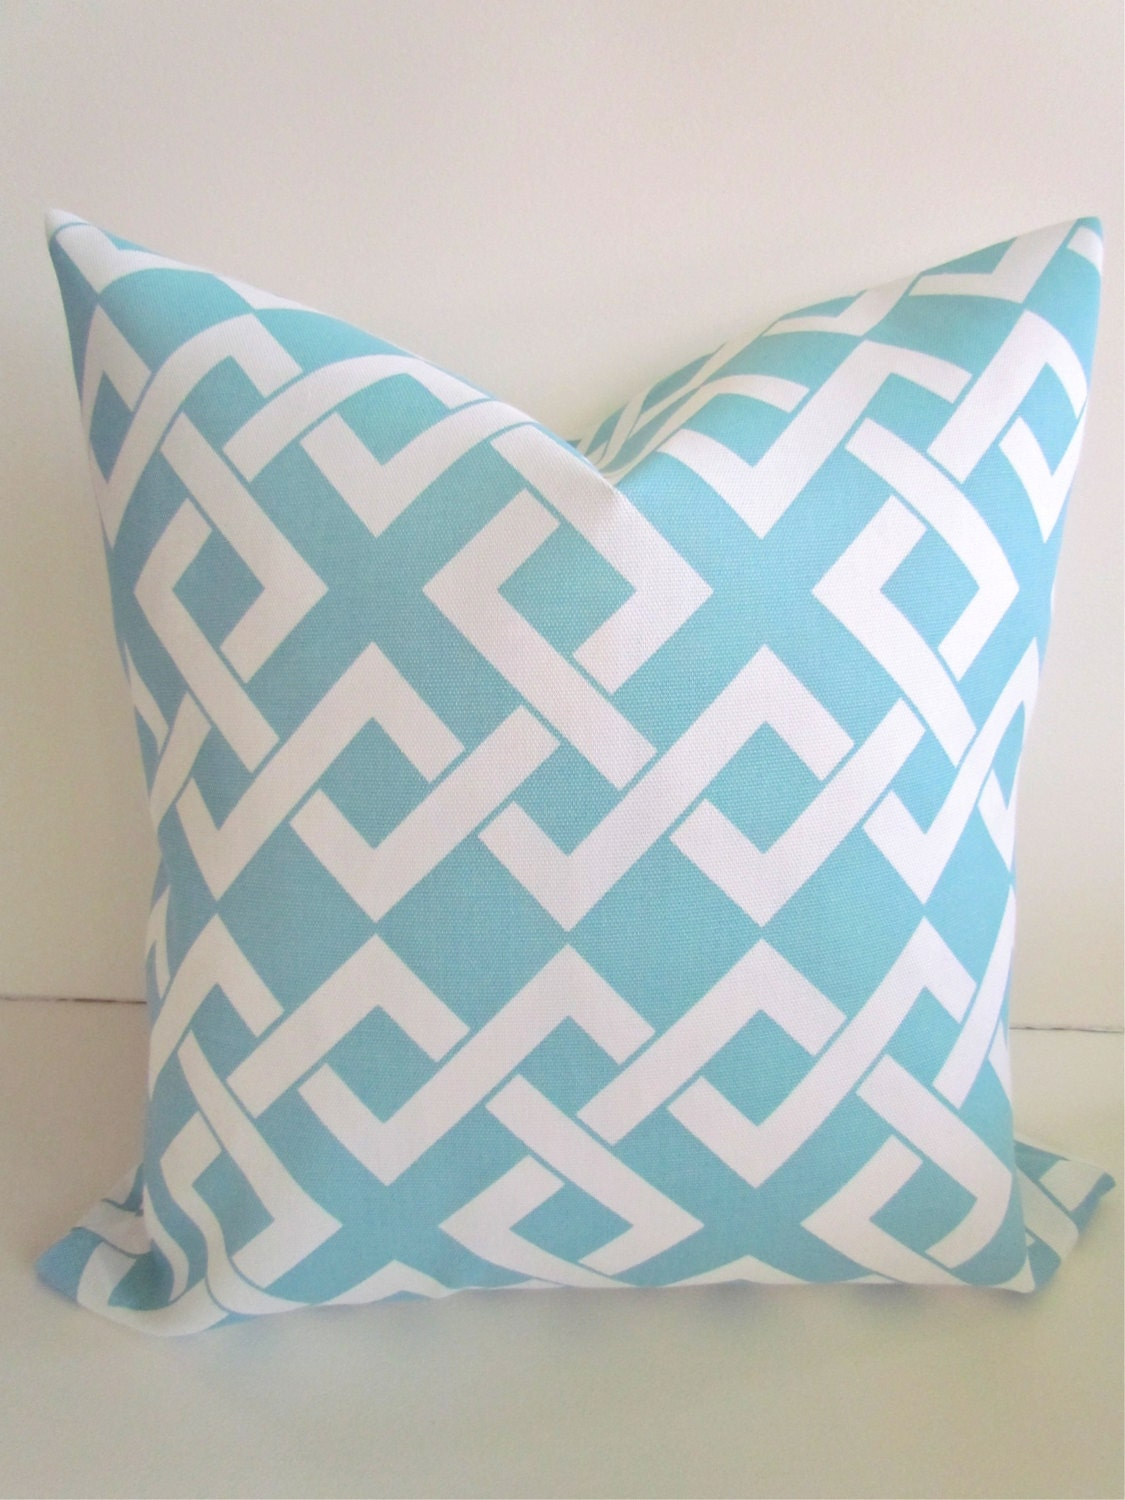 Throw Pillows Blue : Sale OUTDOOR THROW PILLOWS 20x20 Light Blue by SayItWithPillows